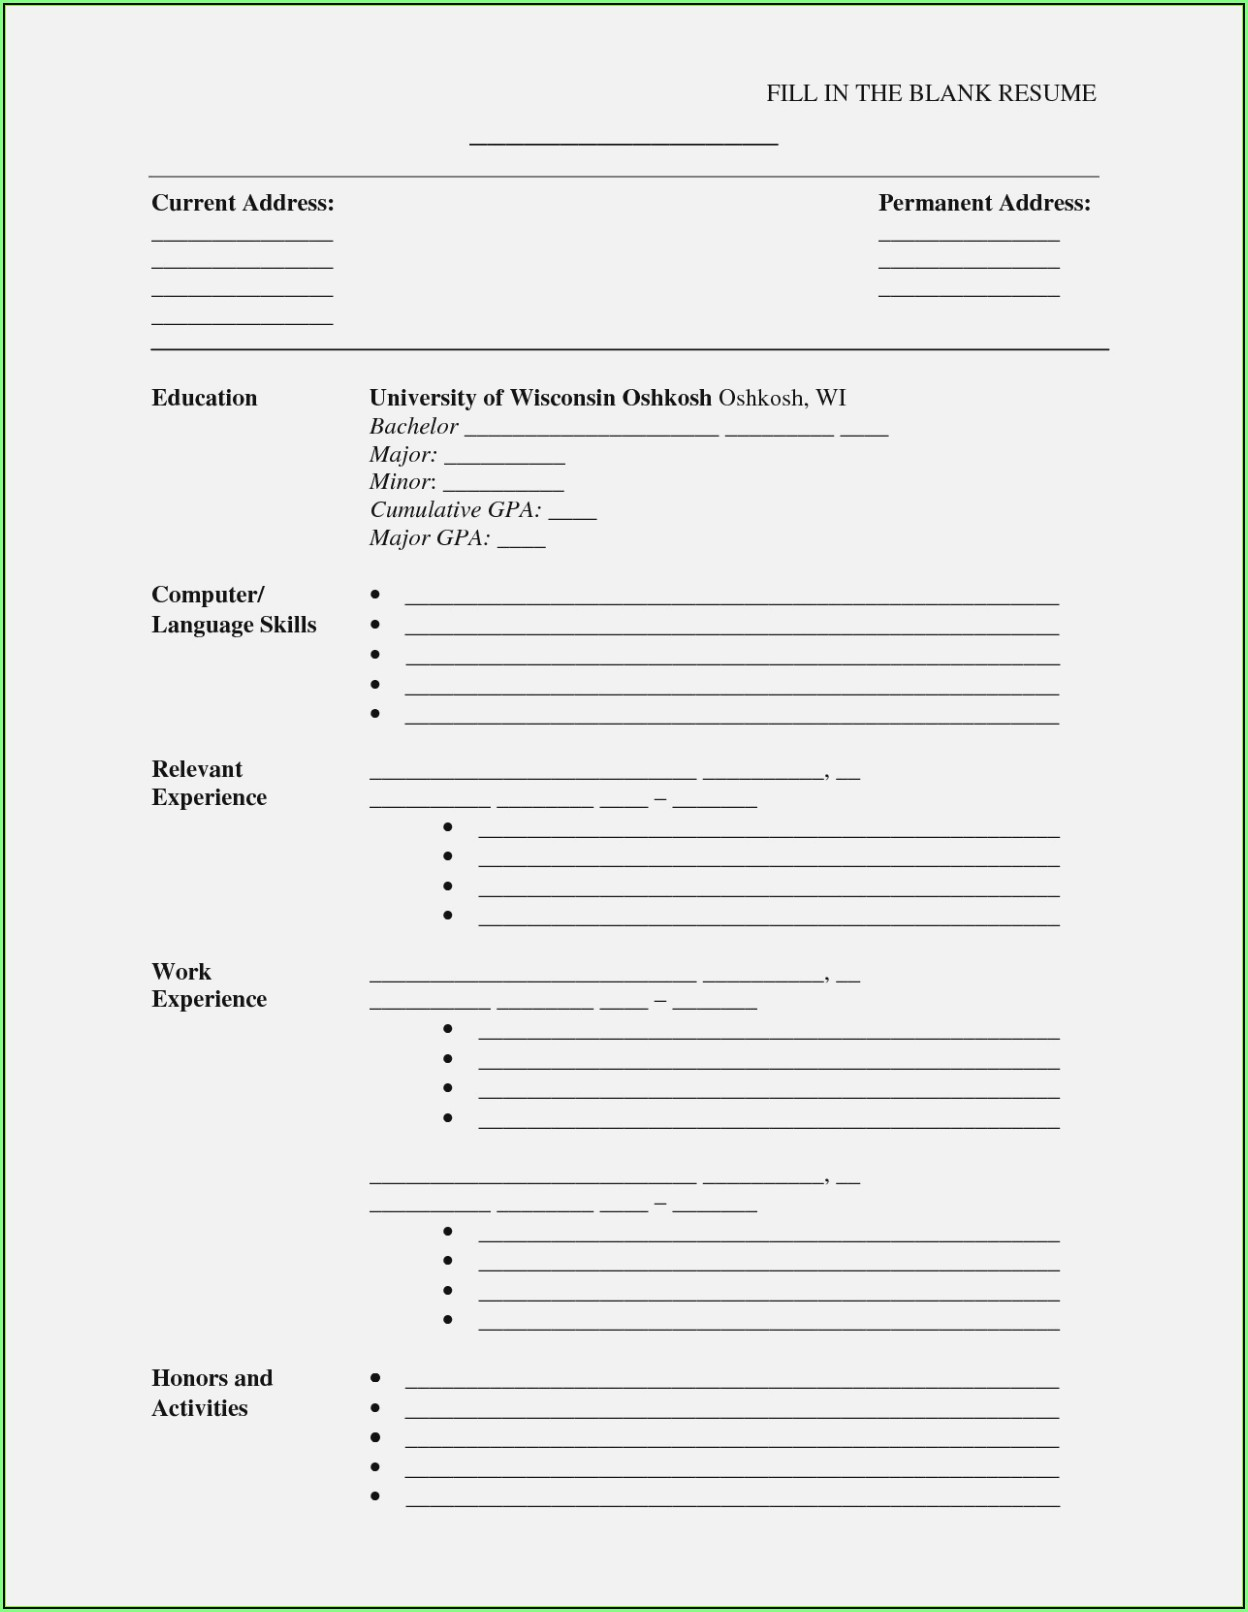 Fill In The Blank Resume Templates